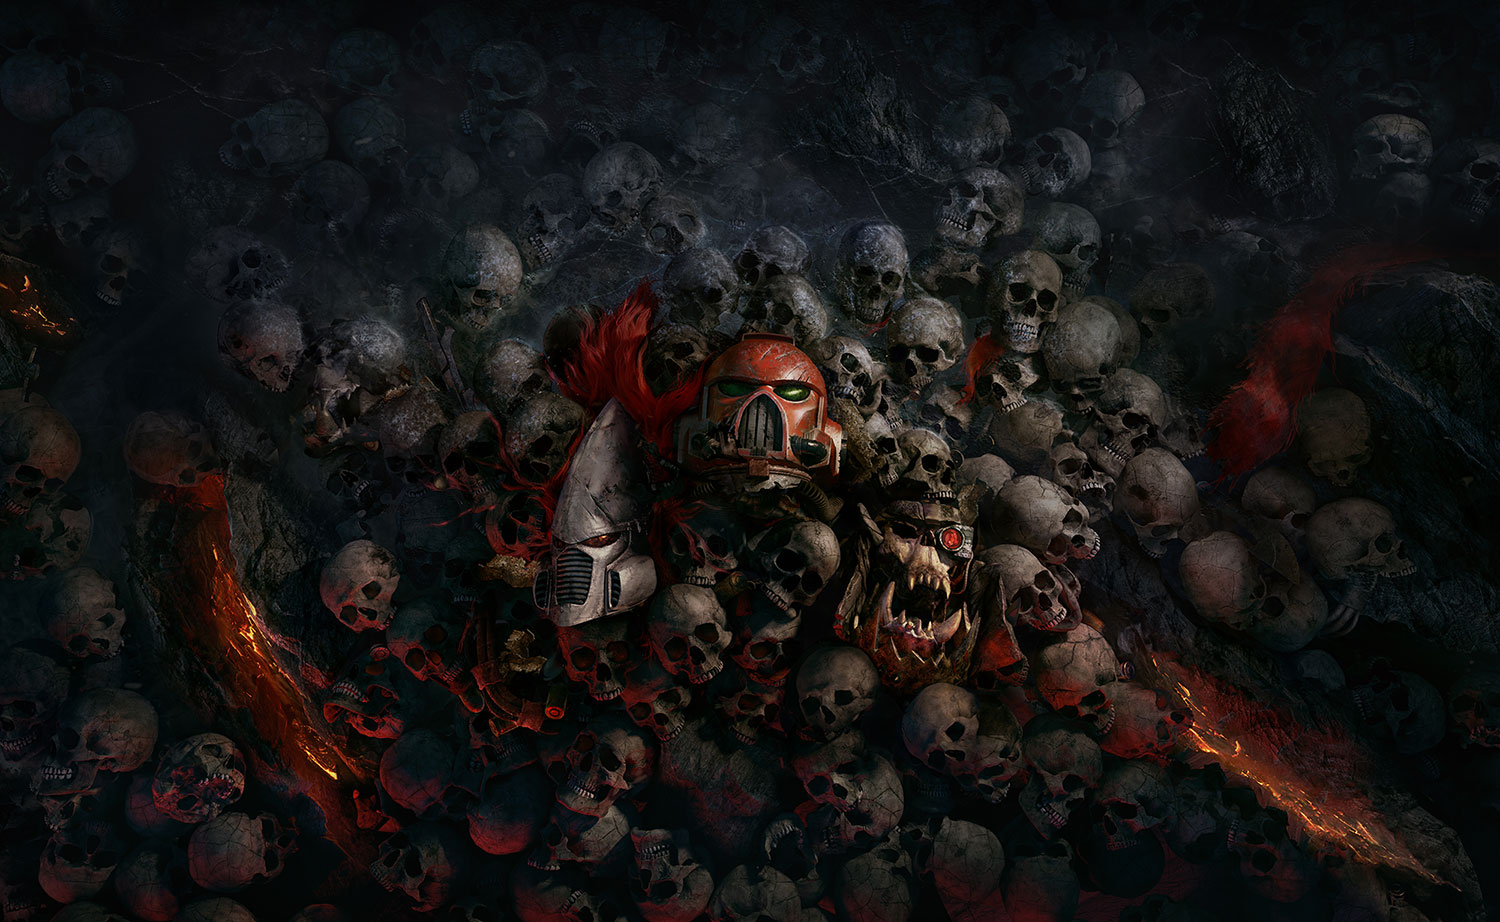 Warhammer 40,000 Dawn of War III KeyArt